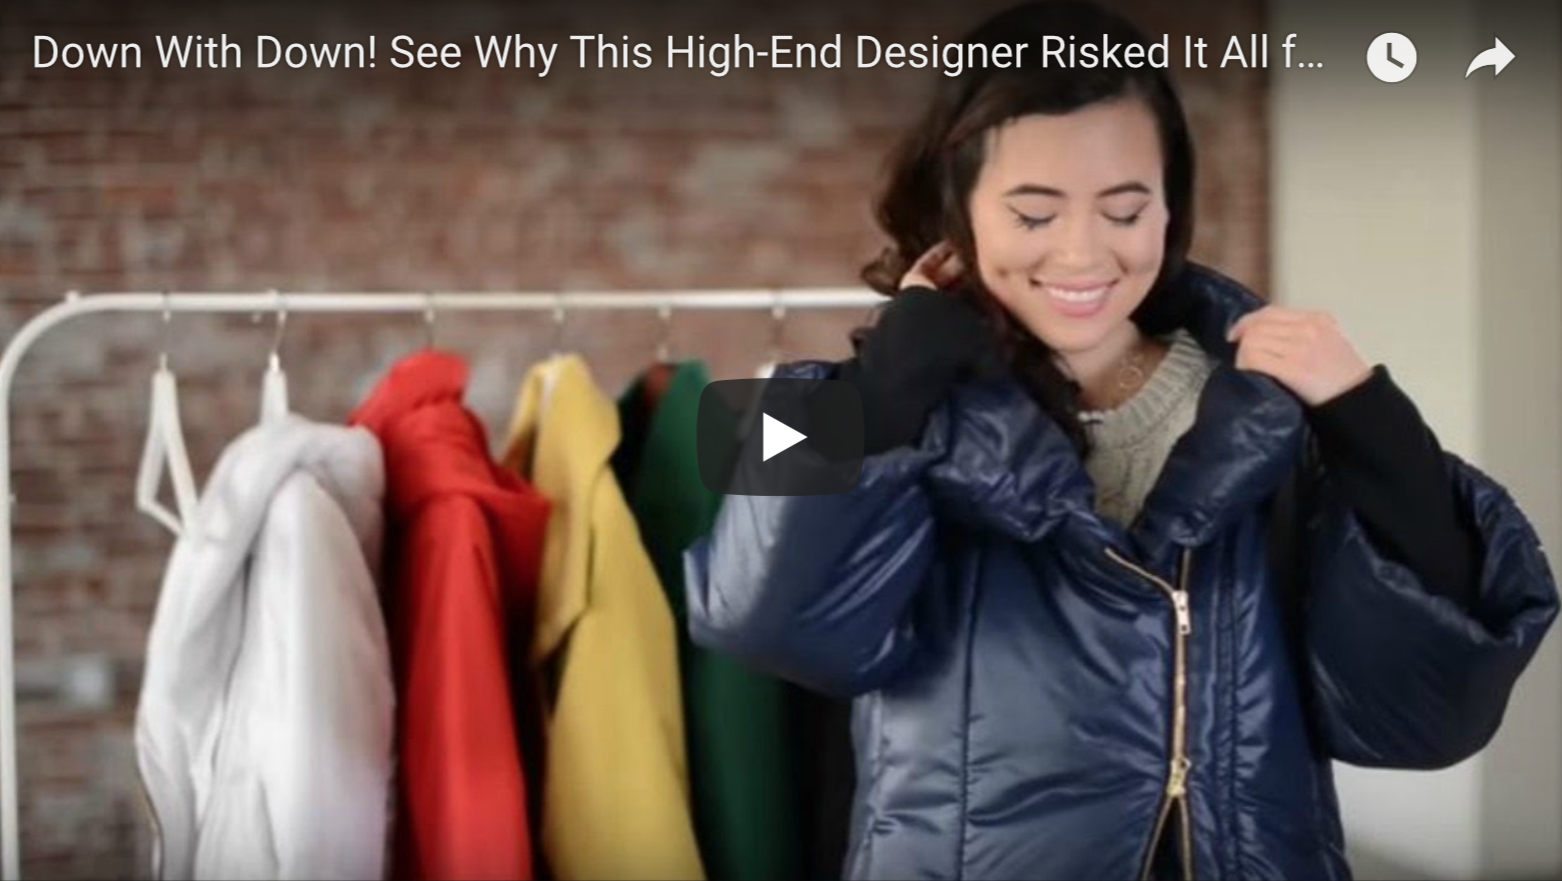 Down With Down! See Why This High-End Designer Risked It All for Vegan Coats | VeganFlix